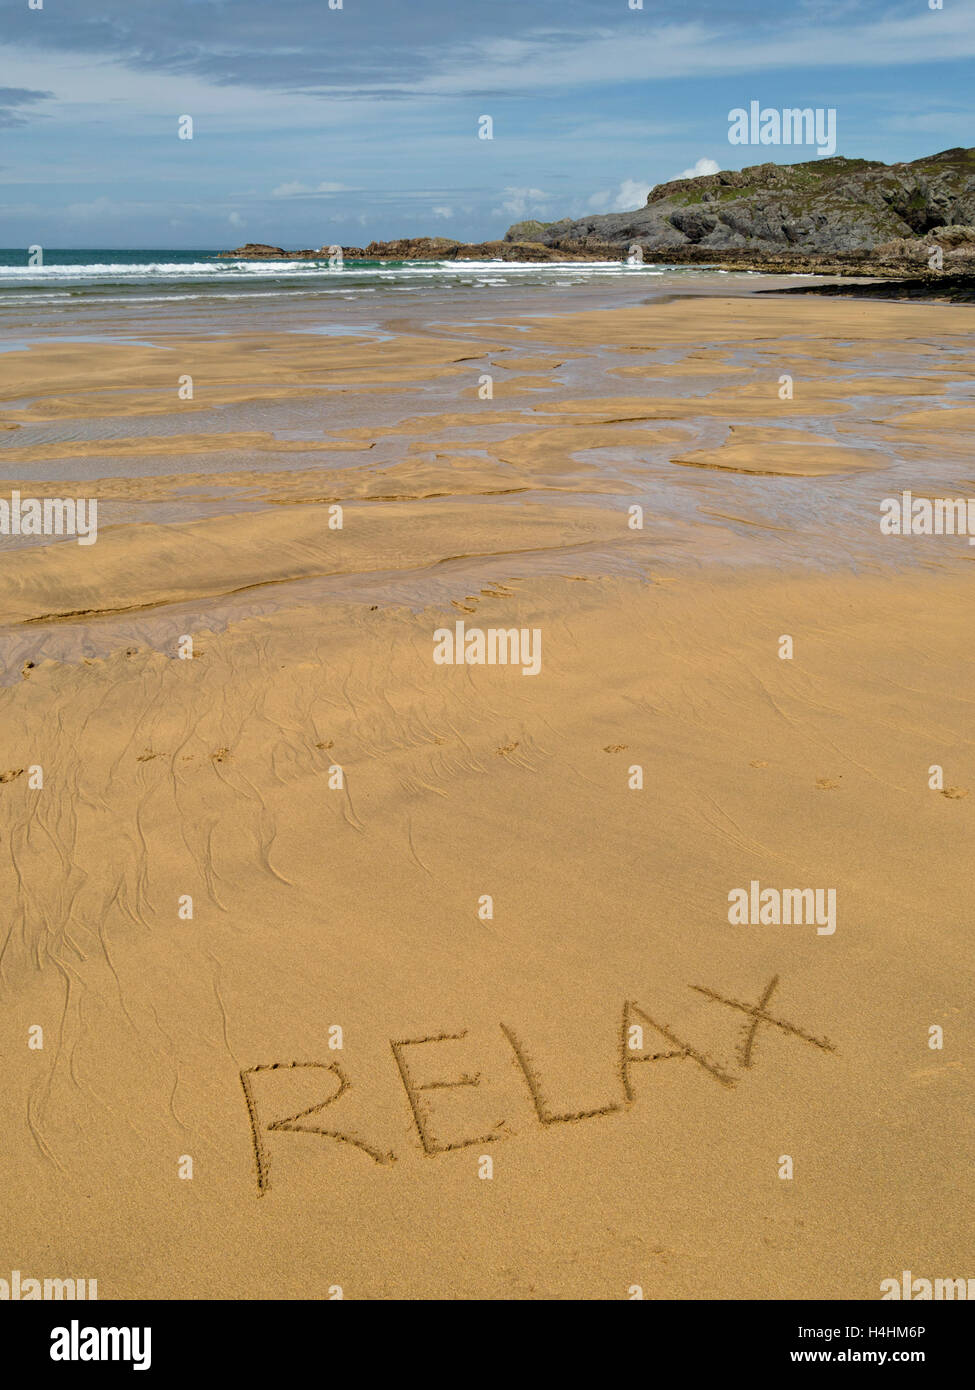 The word 'Relax' written in golden yellow sand of remote Scottish beach. - Stock Image